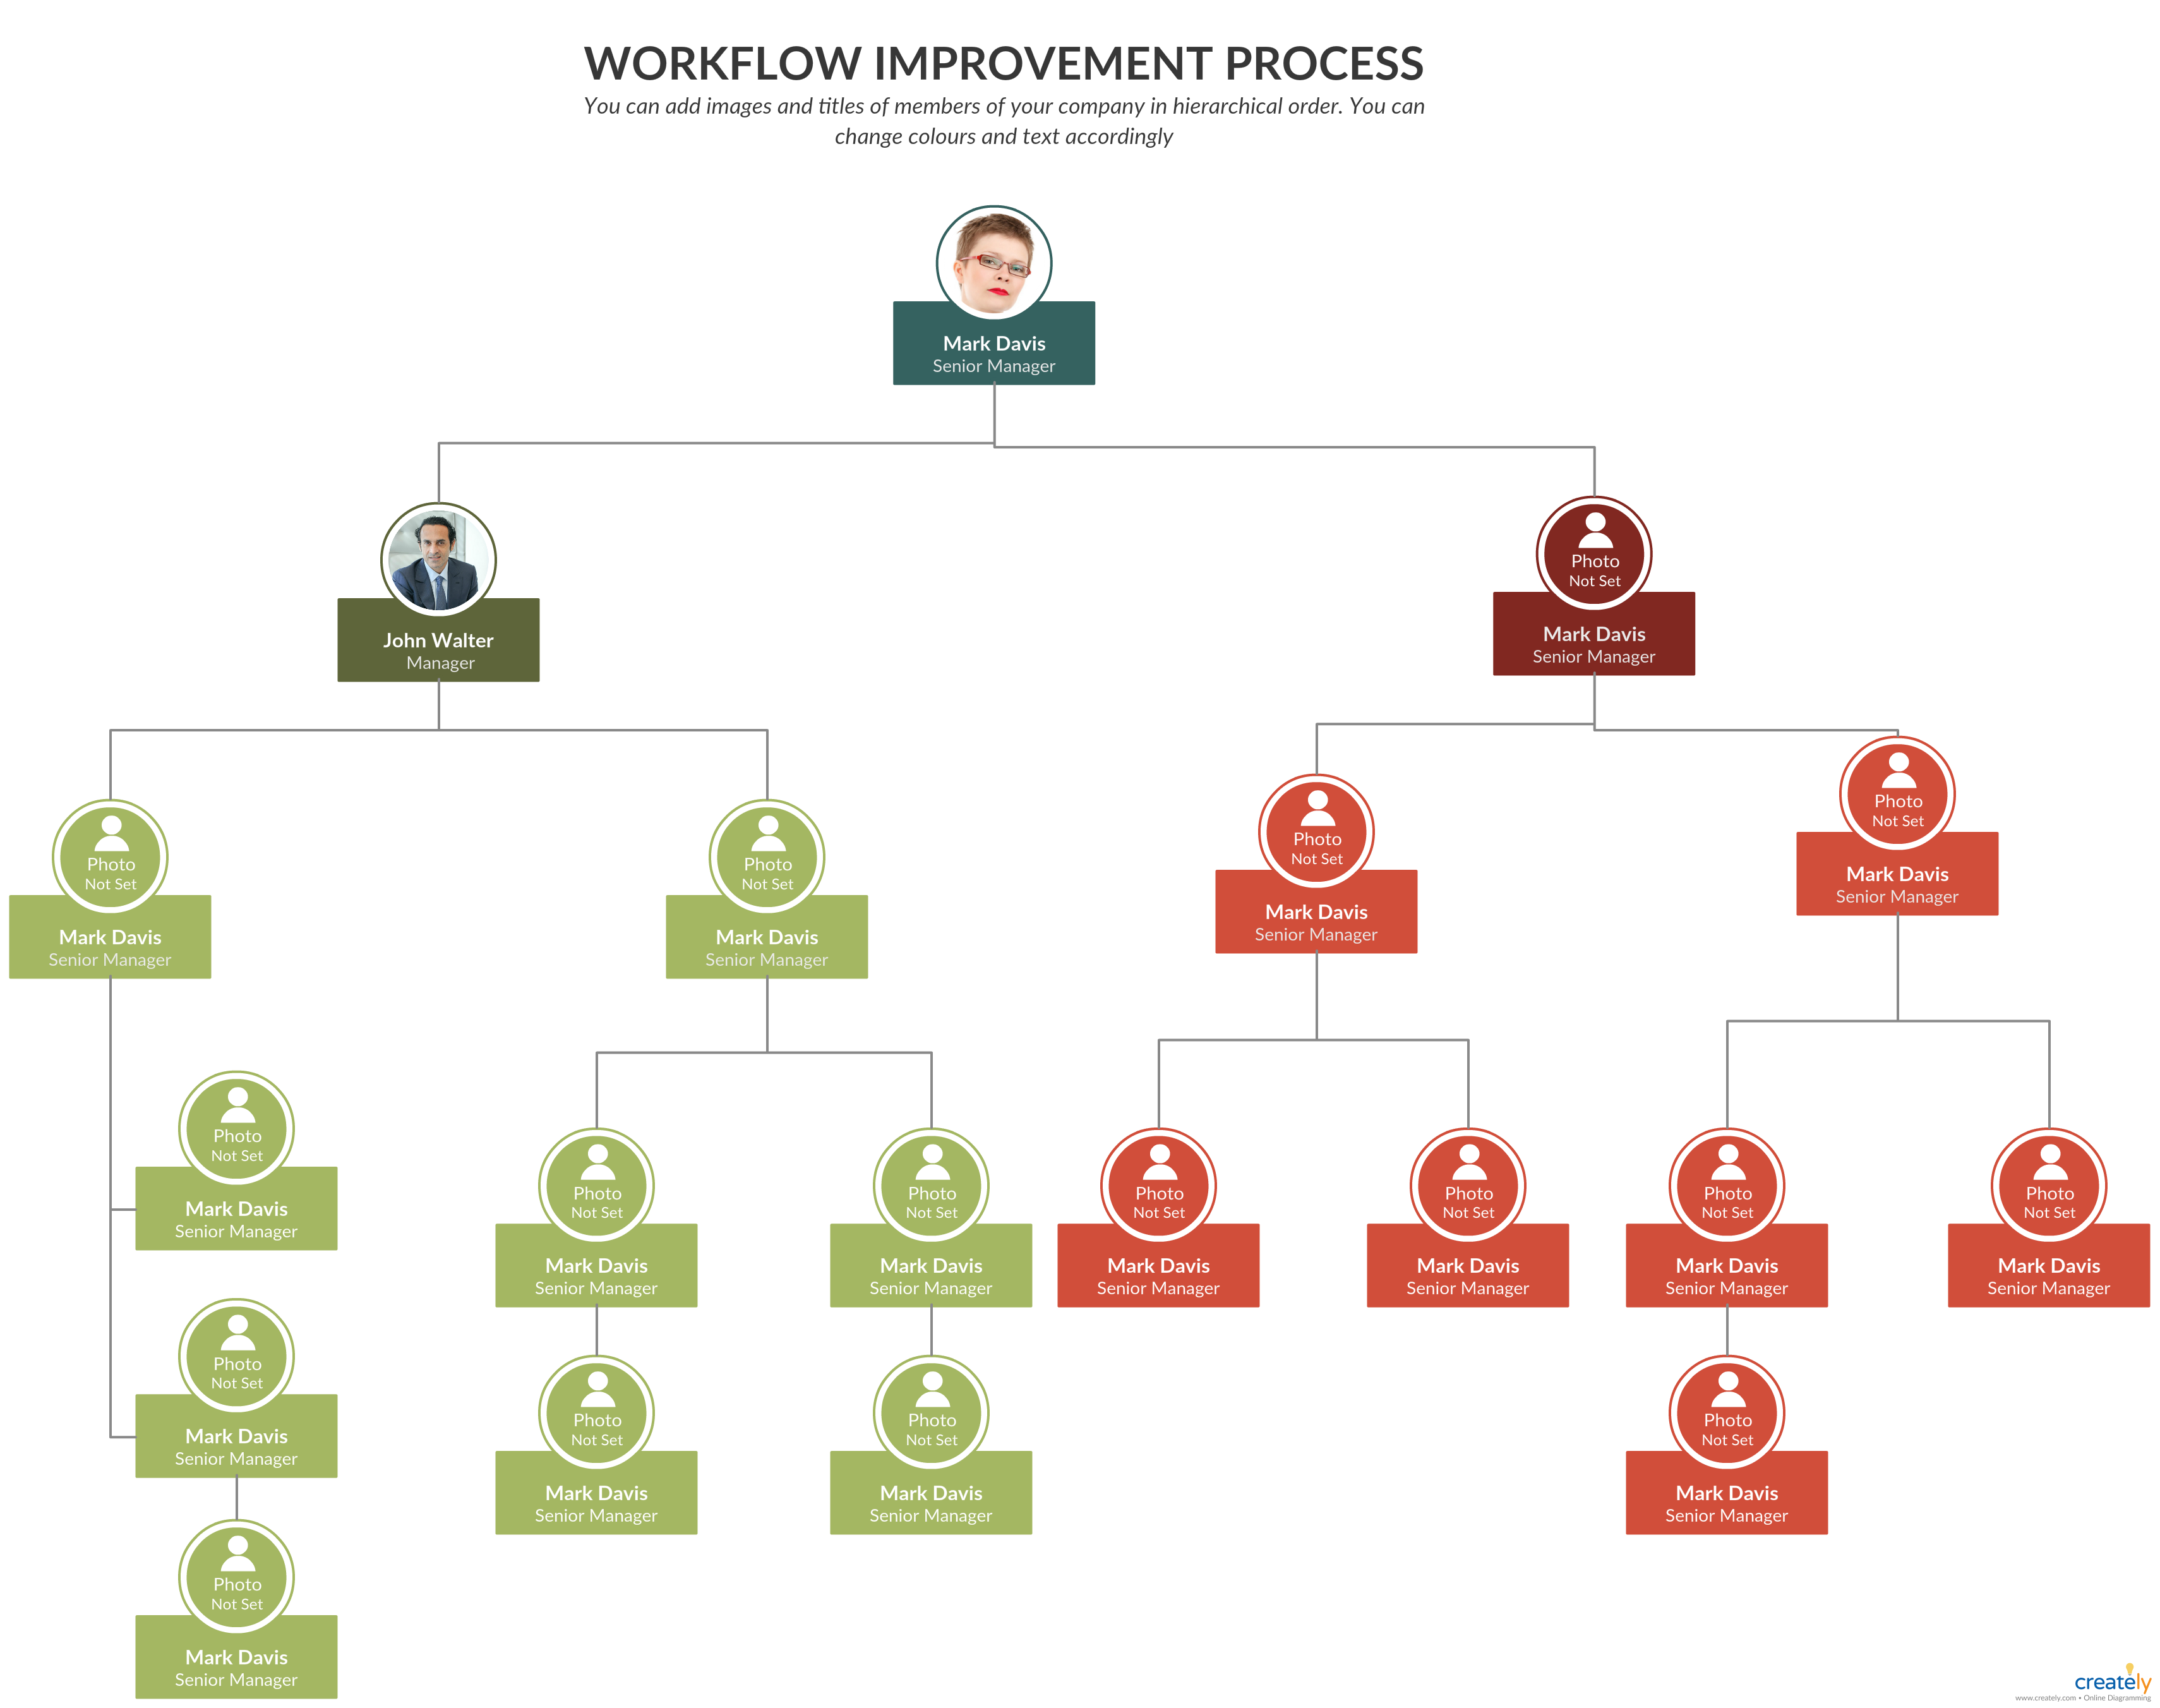 Org Chart For Workflow Improvement Project You Can Edit This Template And Create Your Own Diagram Creately Diagrams Org Chart Organigram Organization Chart